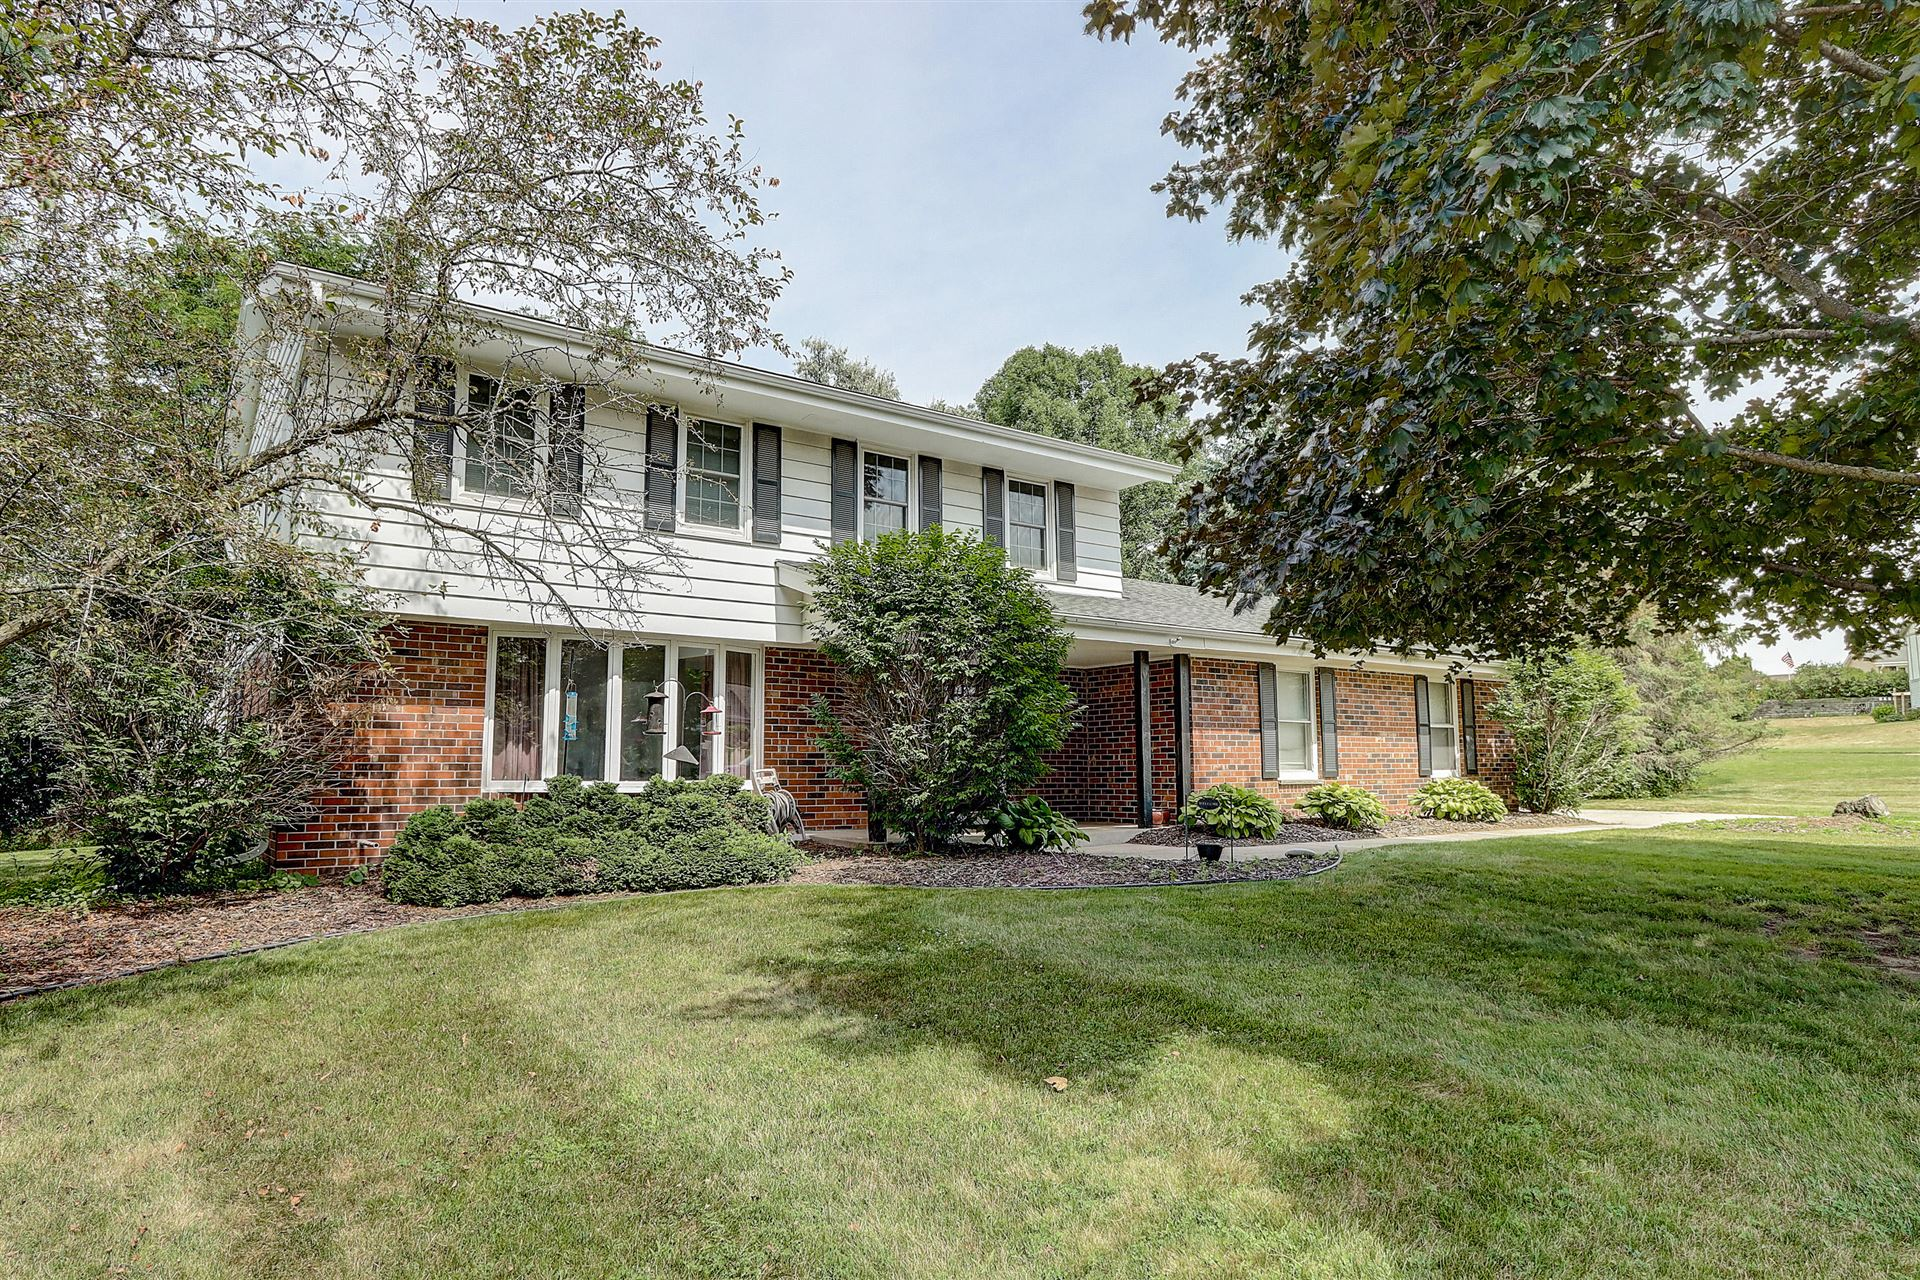 1075 Thornridge Ct, Brookfield, WI 53045 - #: 1699472